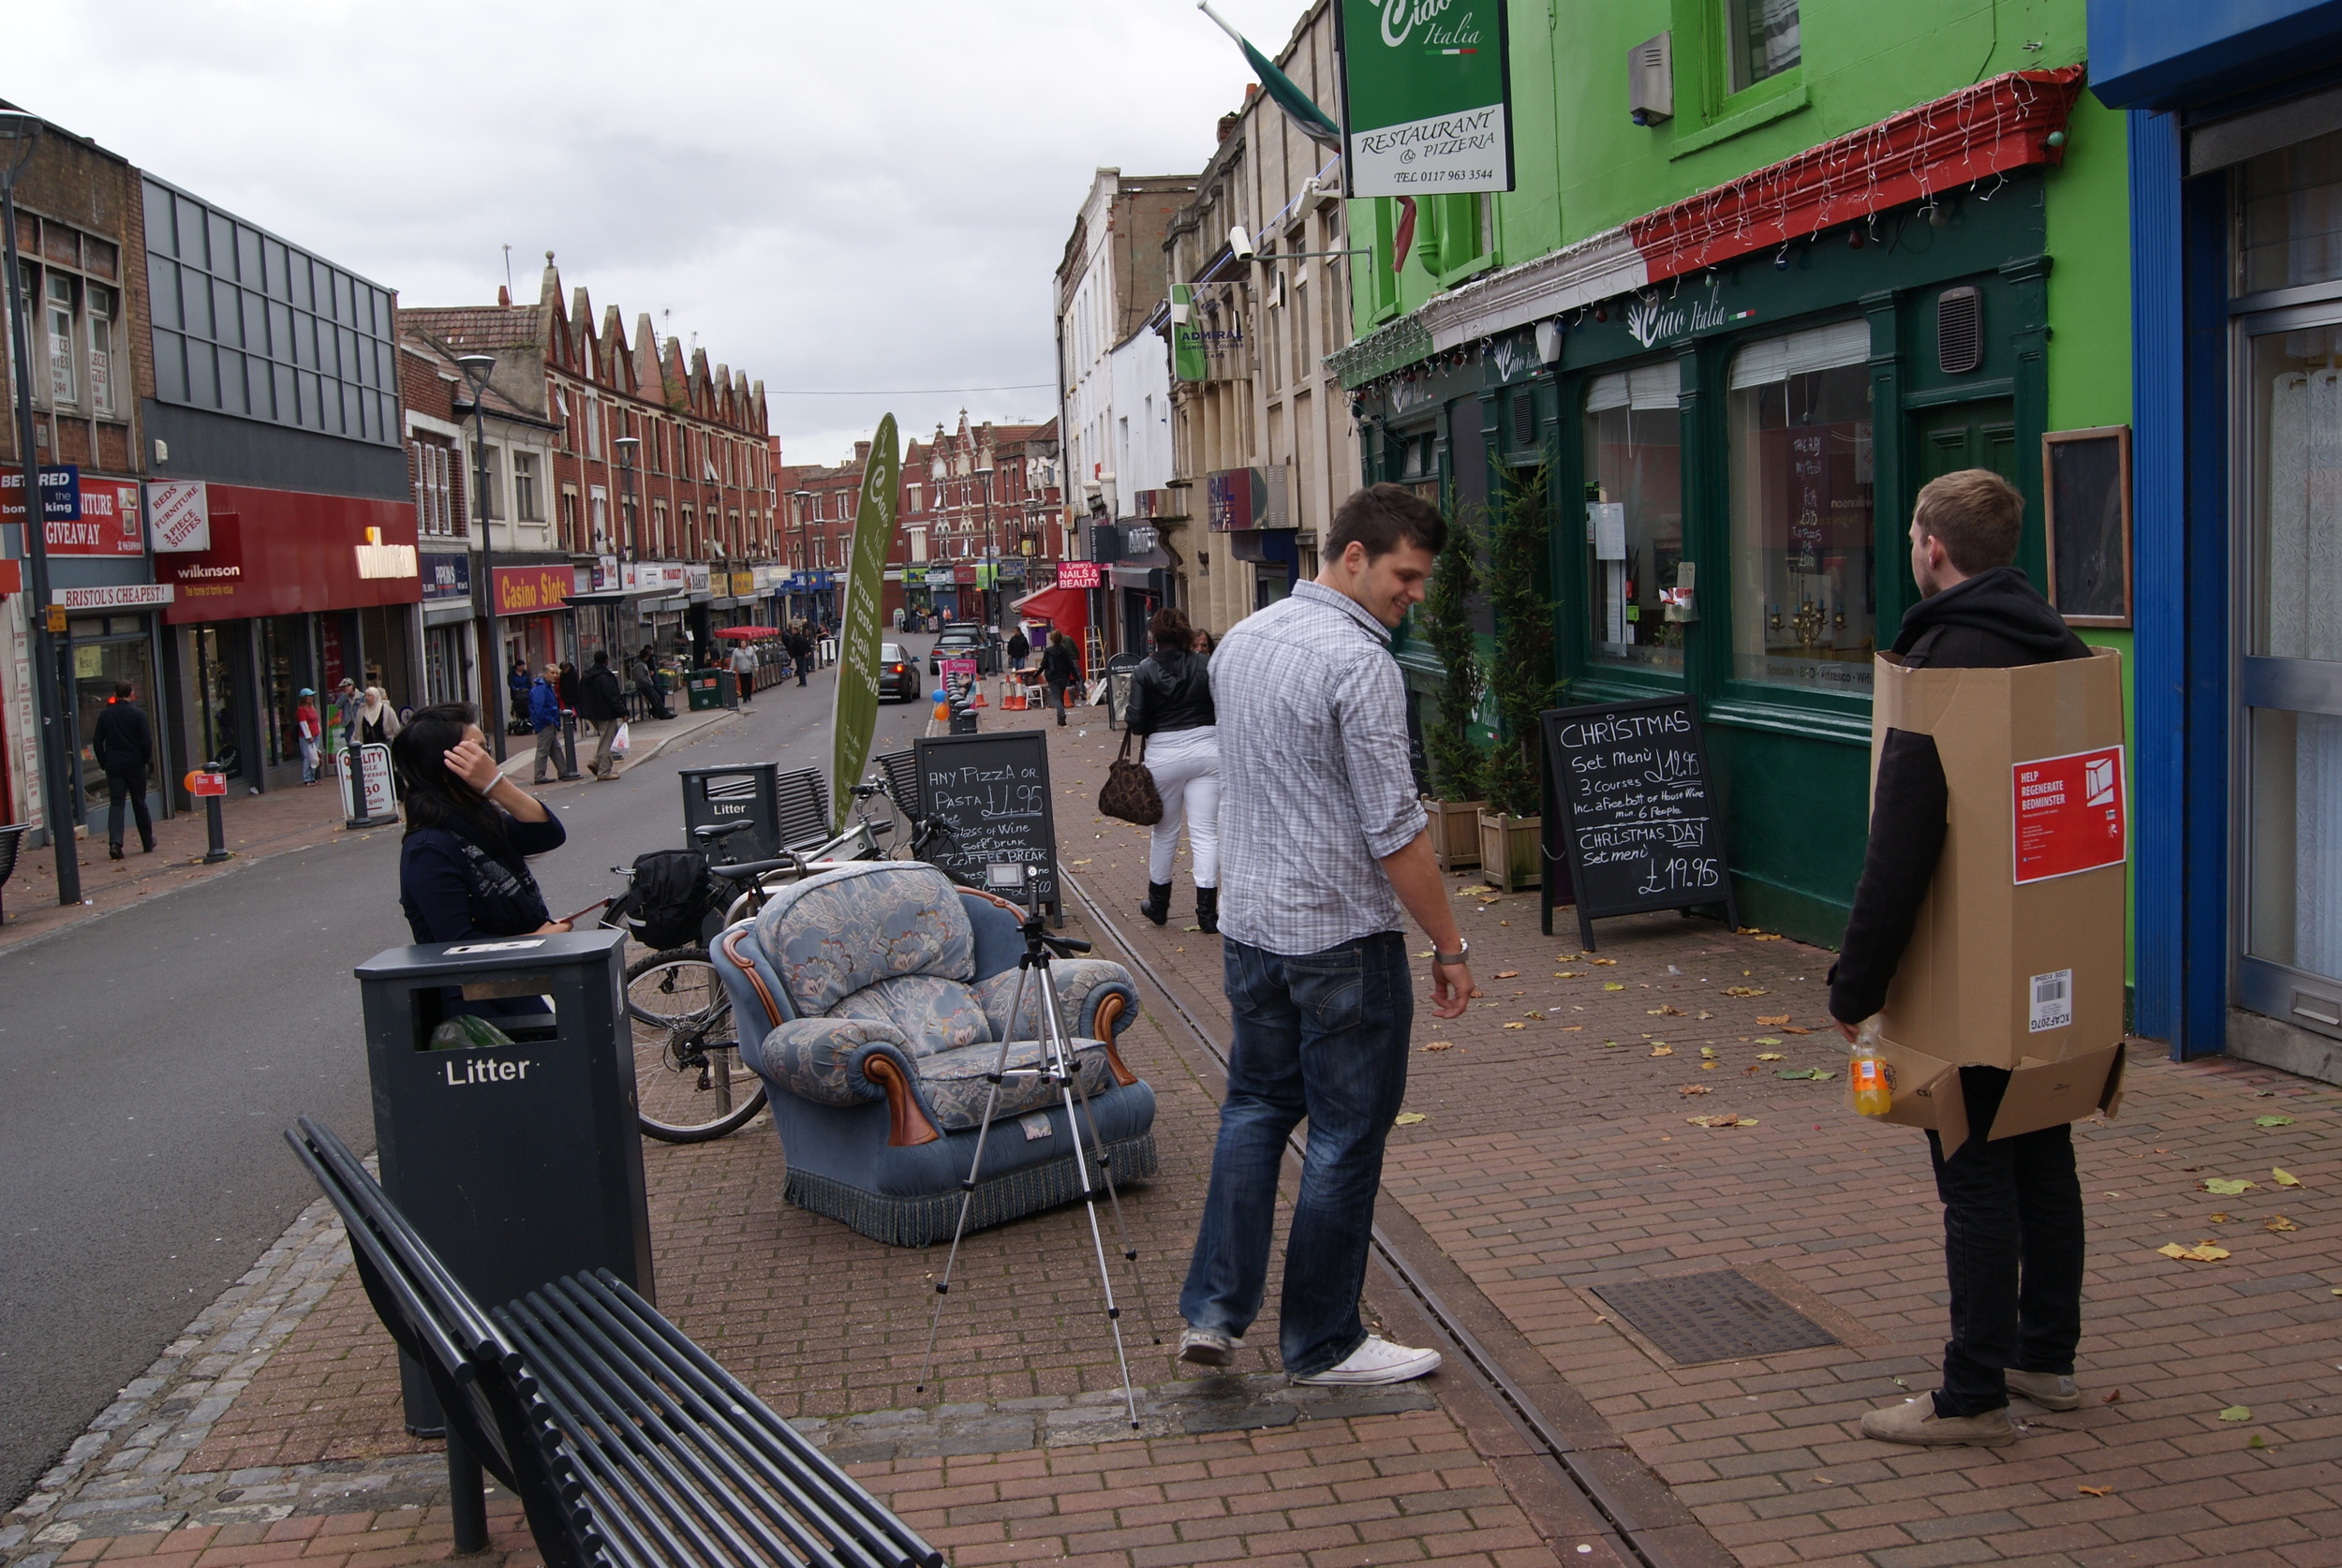 UWE MArch students use street interventions to connect with the community.